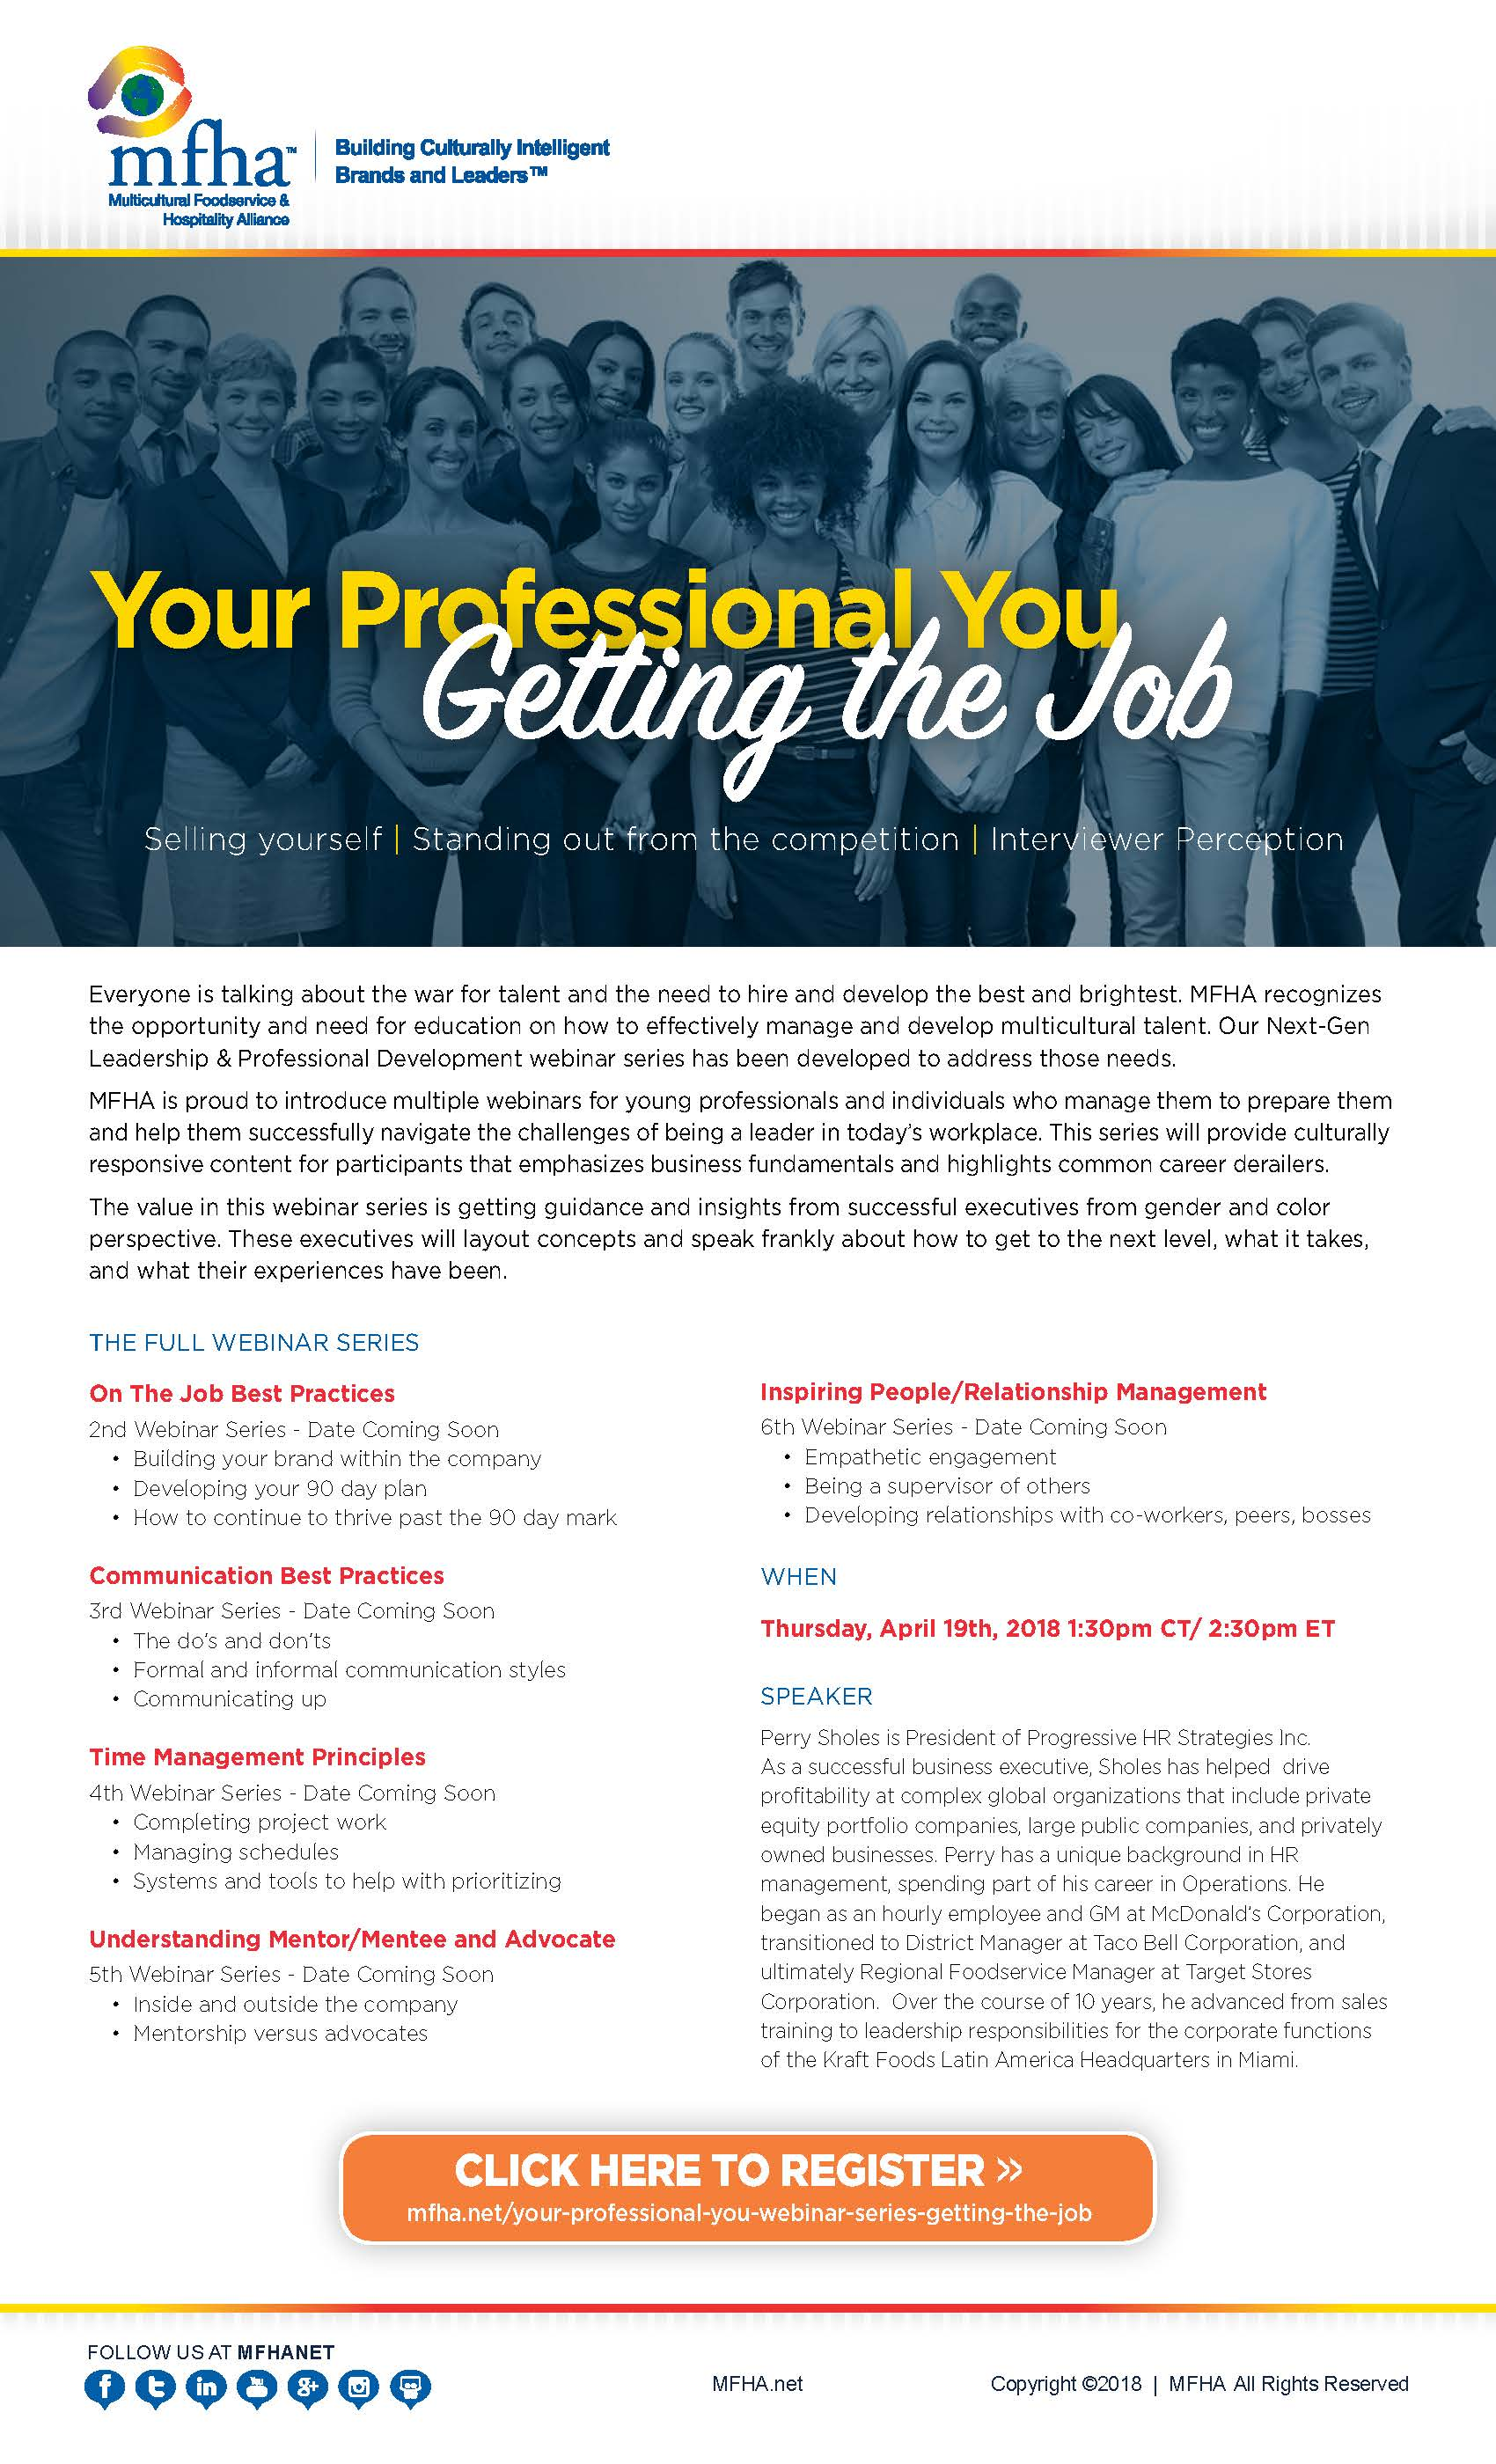 2018 MFHA WEBINAR Series_Your Professional You[59221]